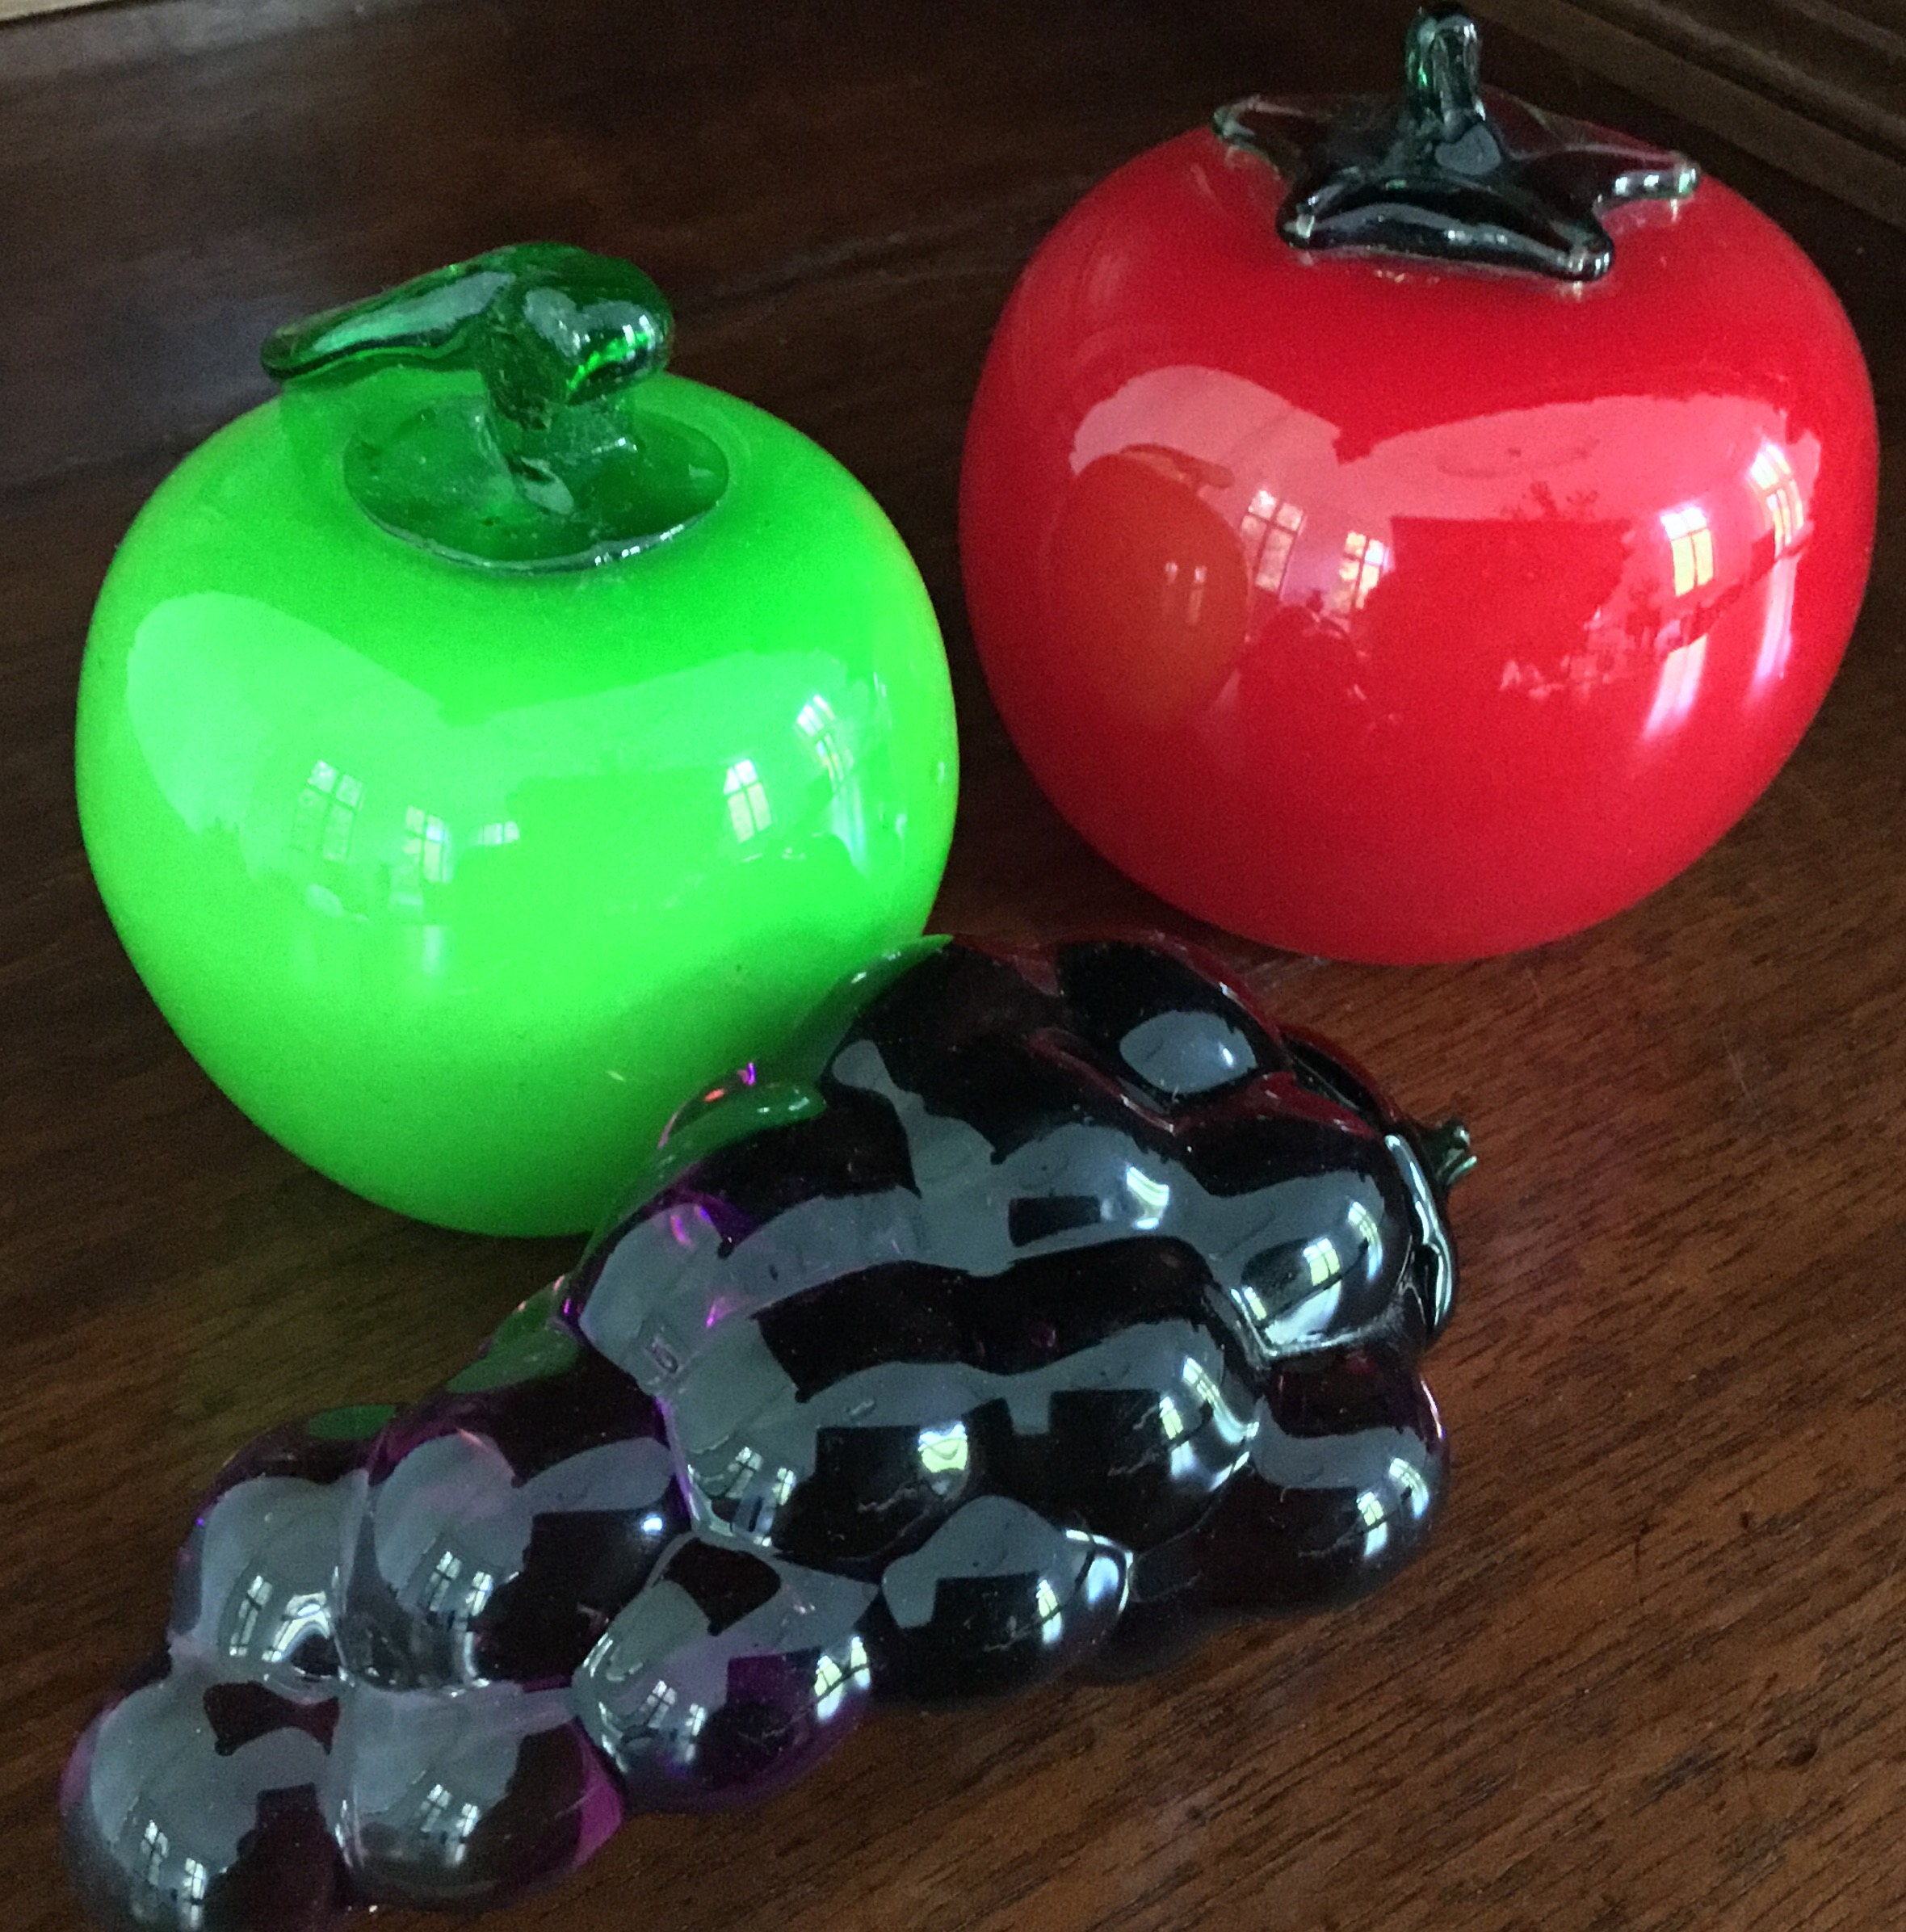 Glass Tomato, Apple, and Grapes